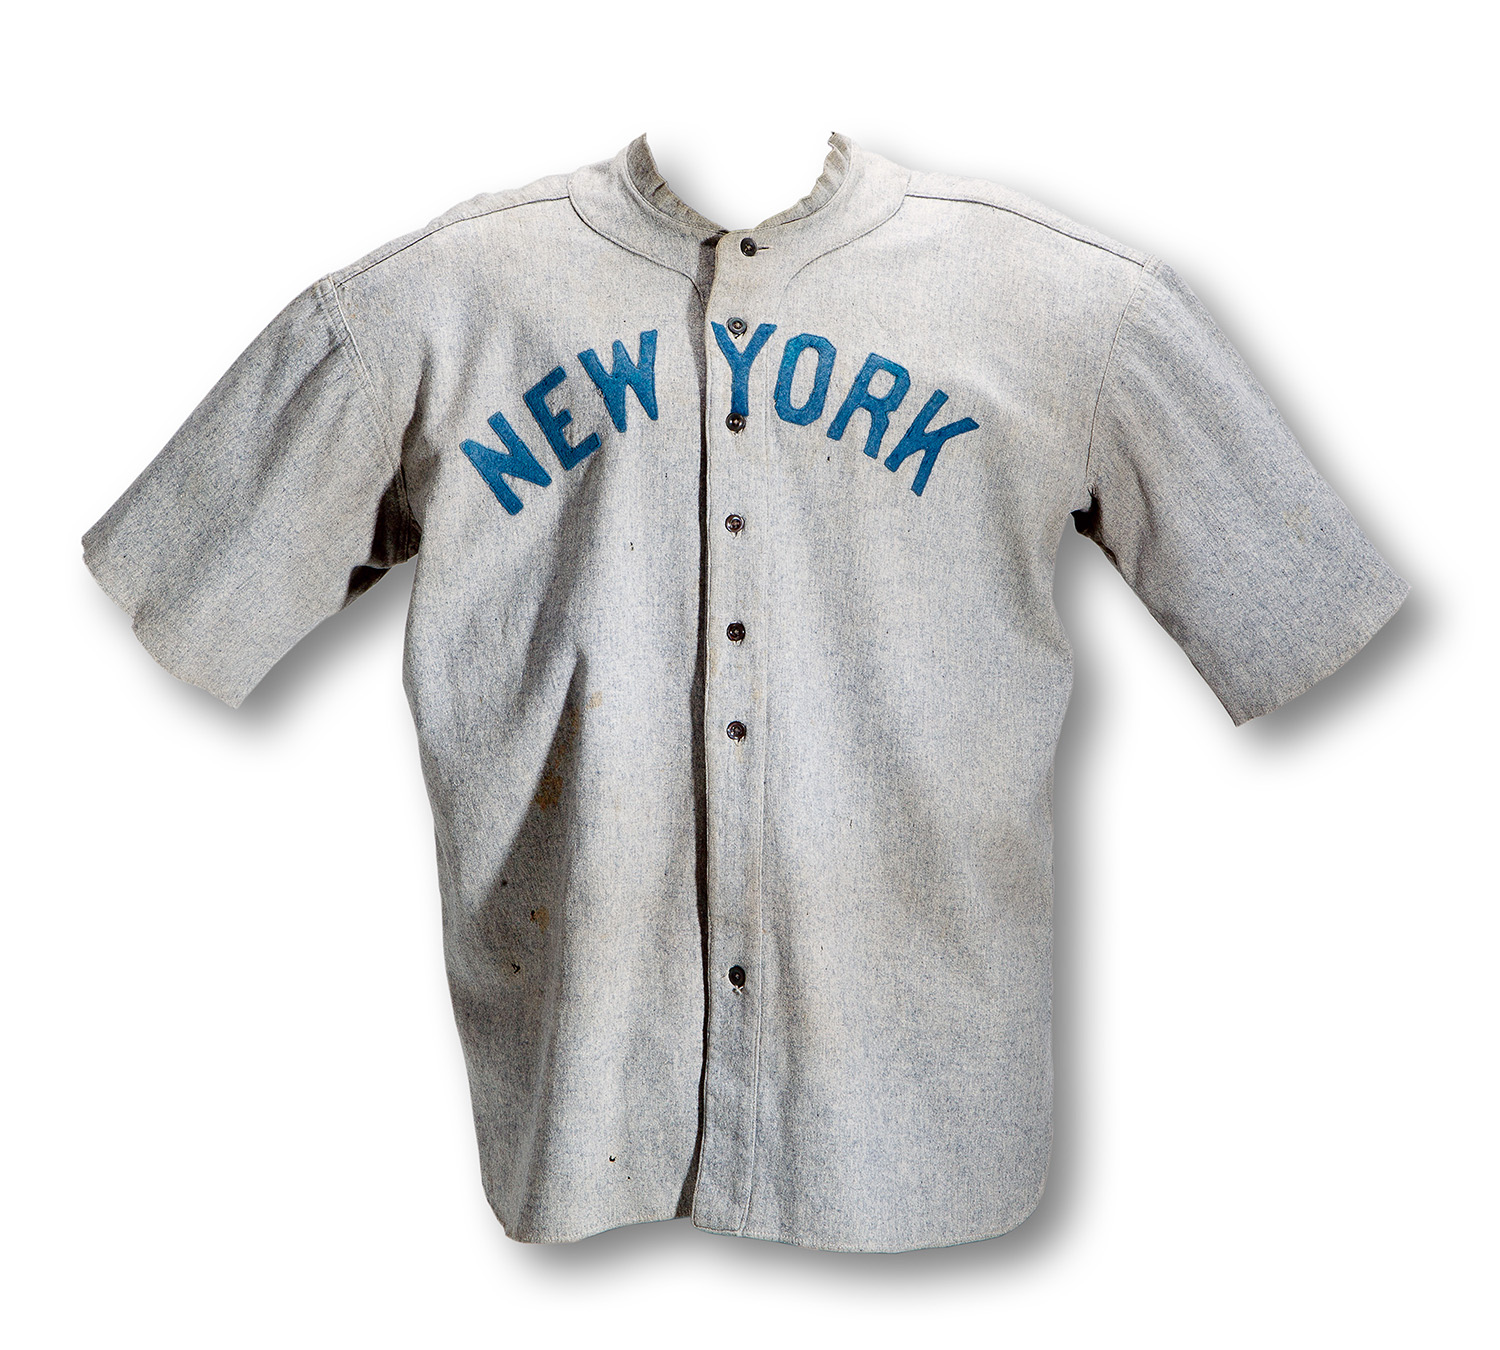 A road gray, game-worn New York Yankees jersey that was worn by Babe Ruth. SCP Auctions sold it for $4.4 million in May 2012, setting a then-record for any item of sports memorabilia at auction.